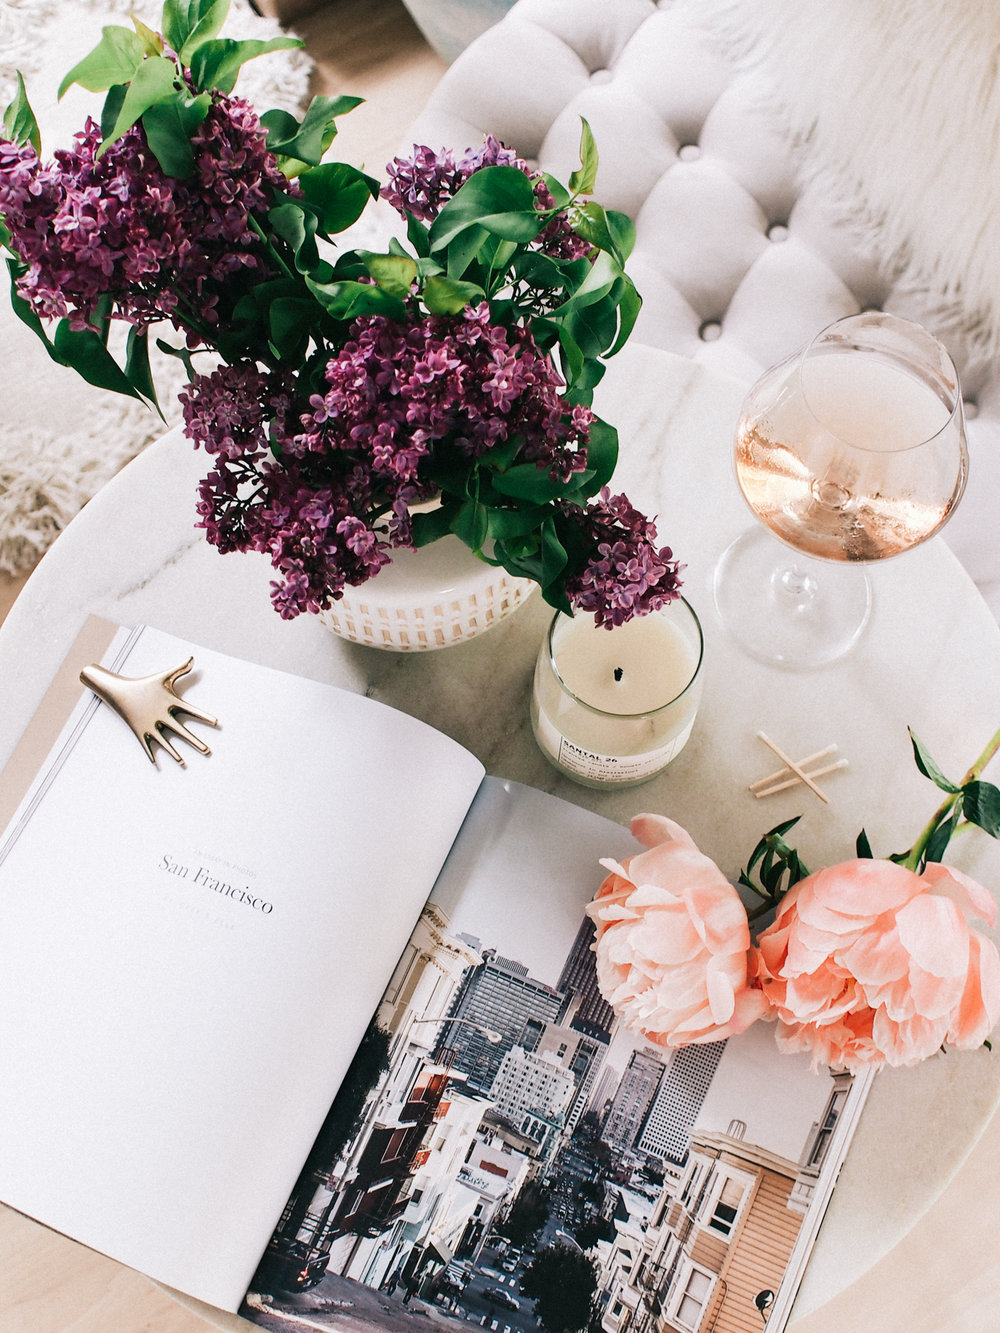 How-to-style-an-entry-table-2.jpg